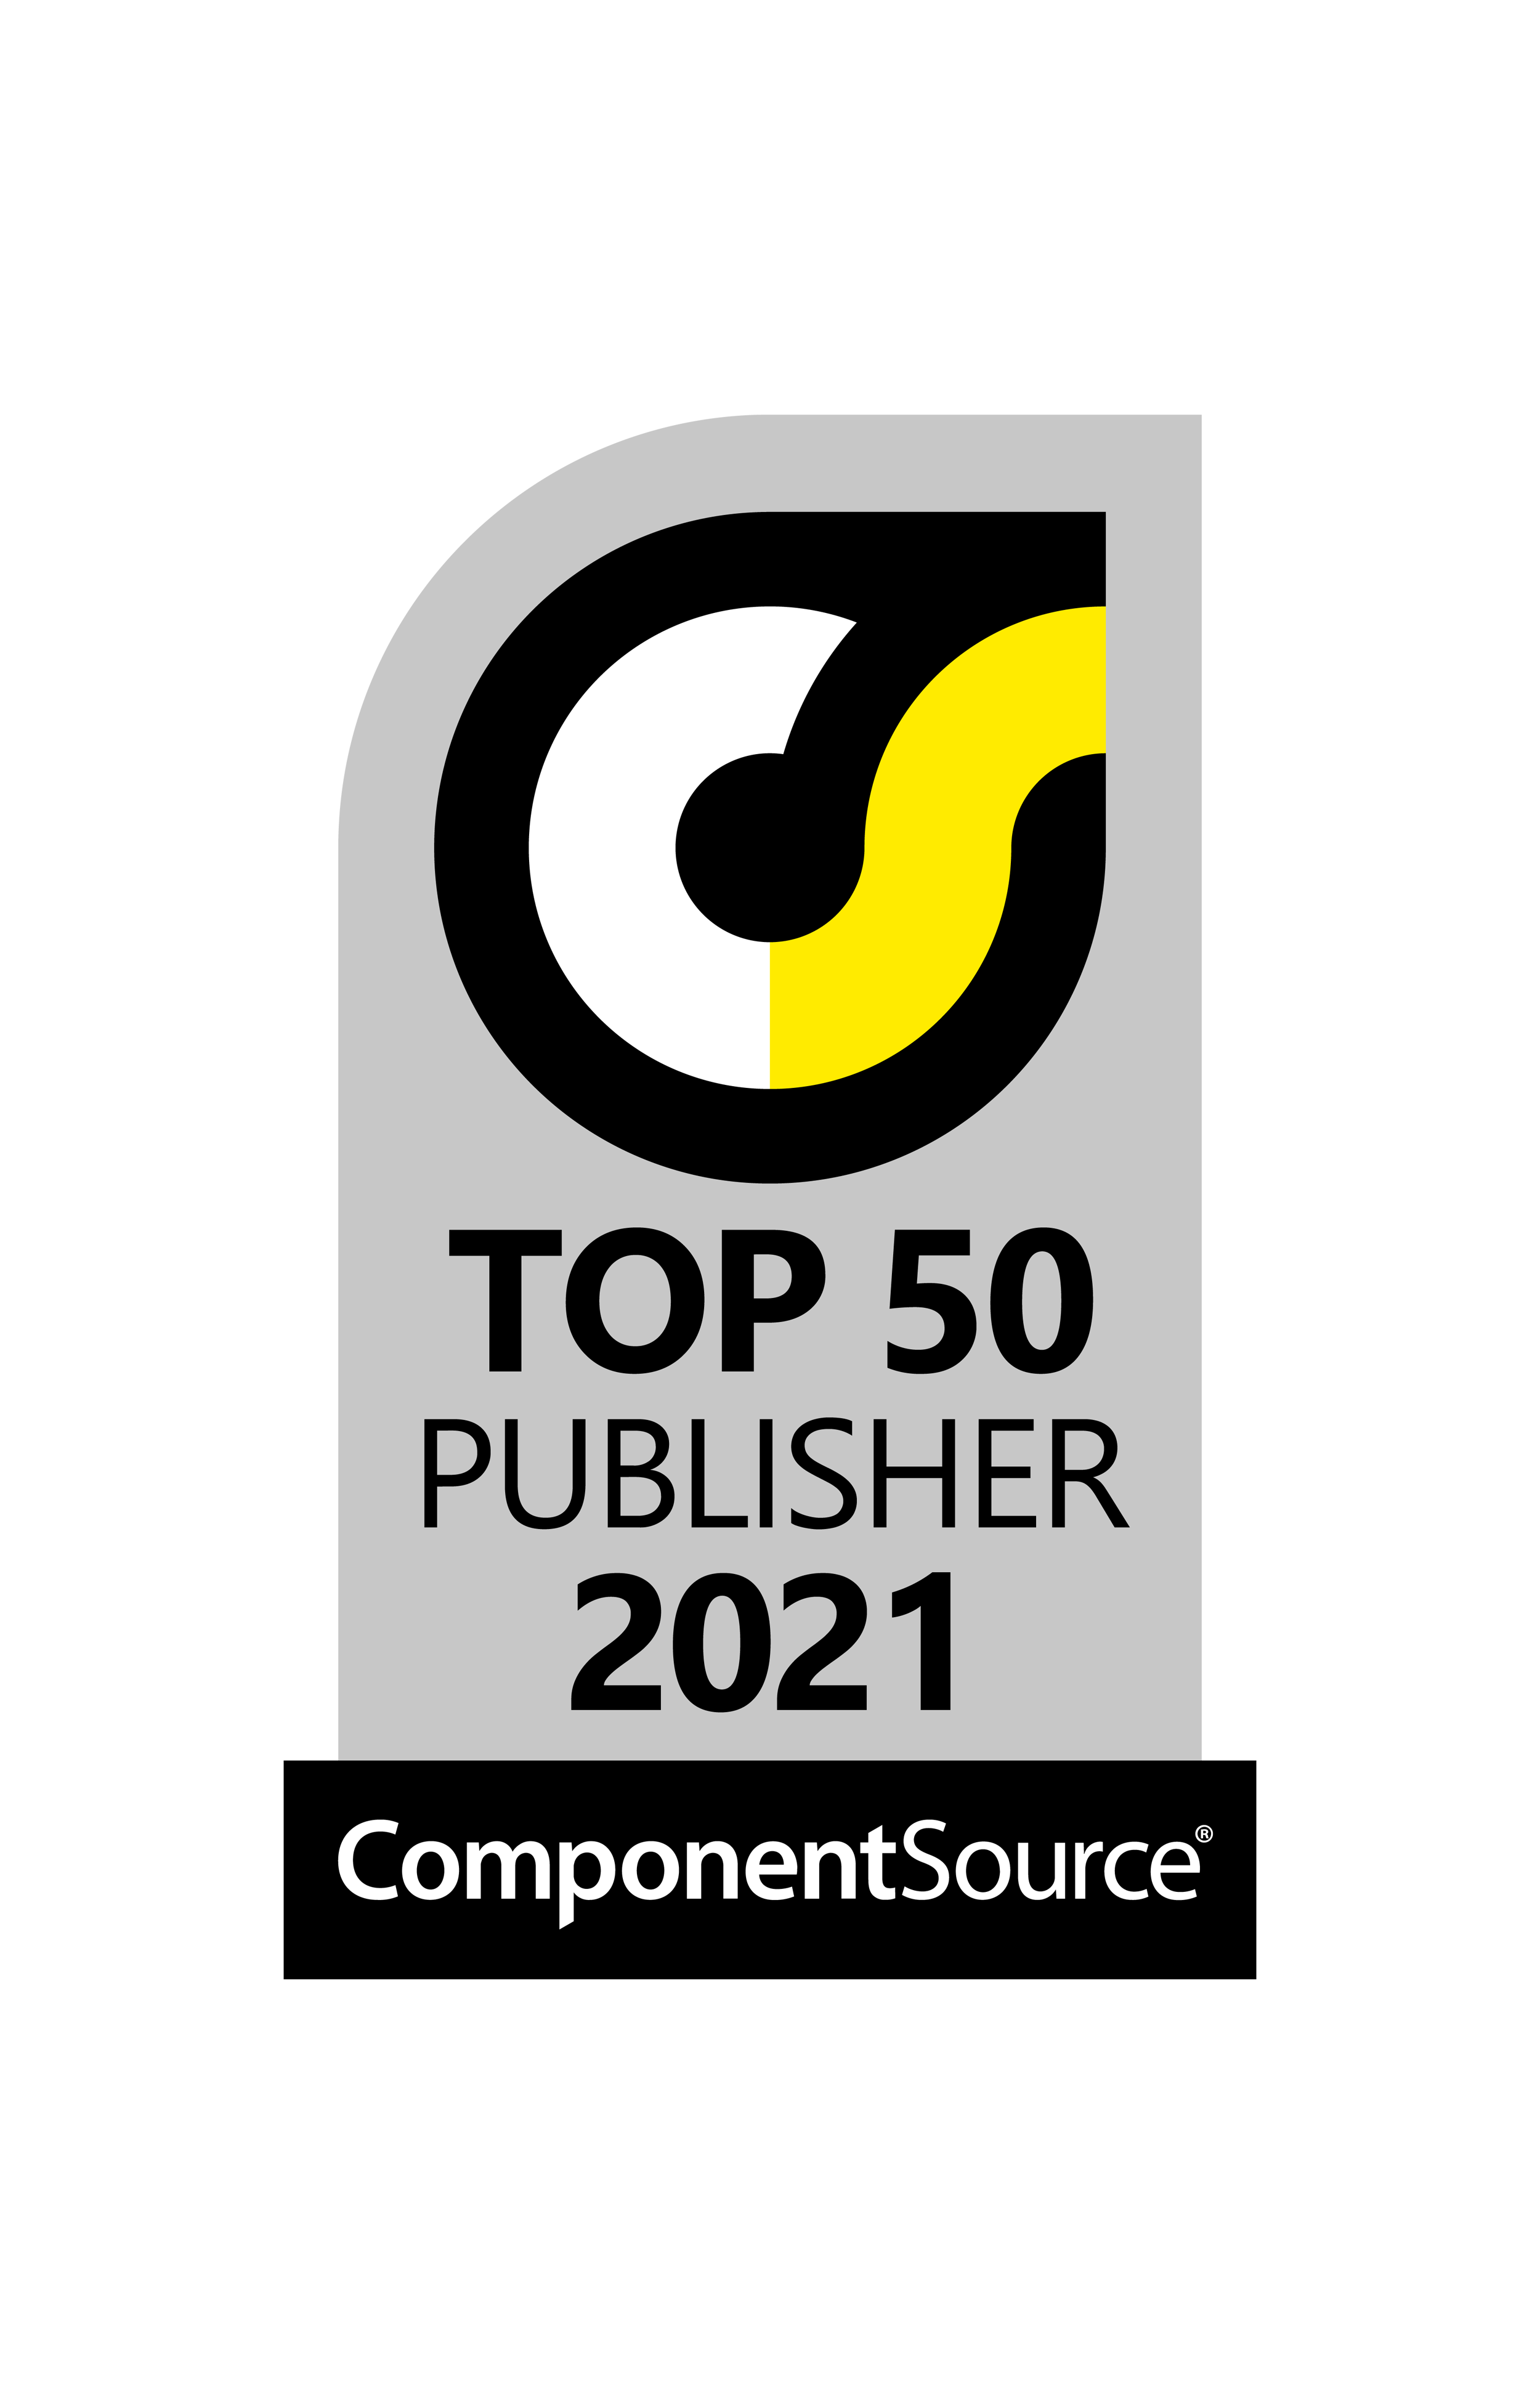 Top 50 Publisher 2021!